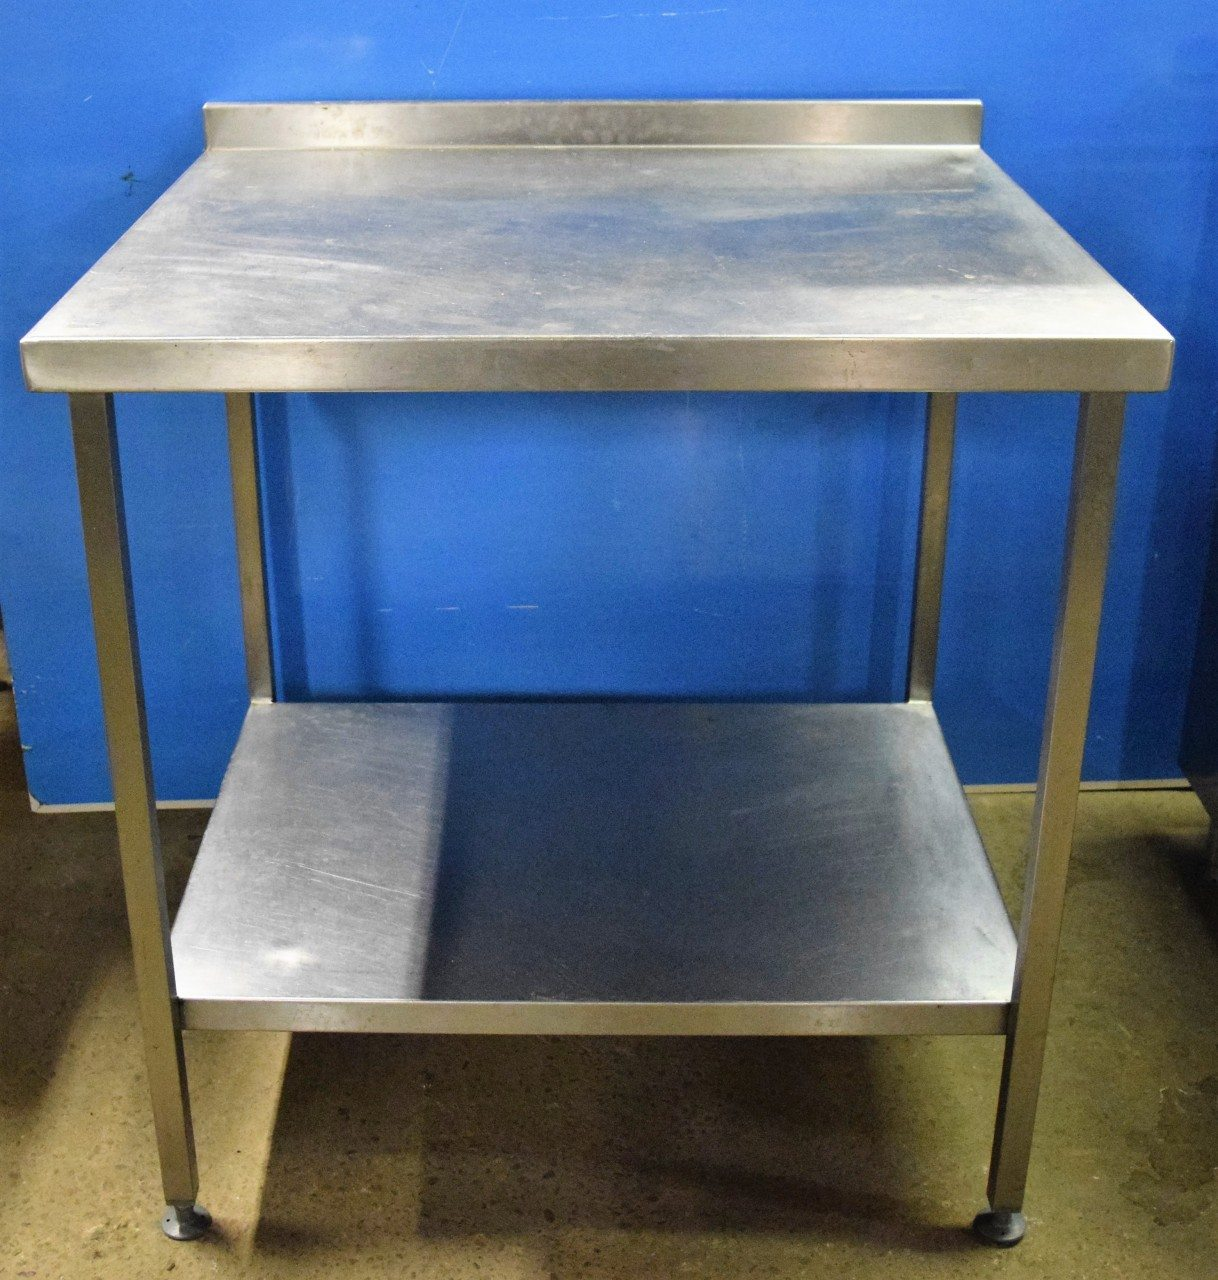 STAINLESS STEEL  Table with Undershelf 90cm x 80cm